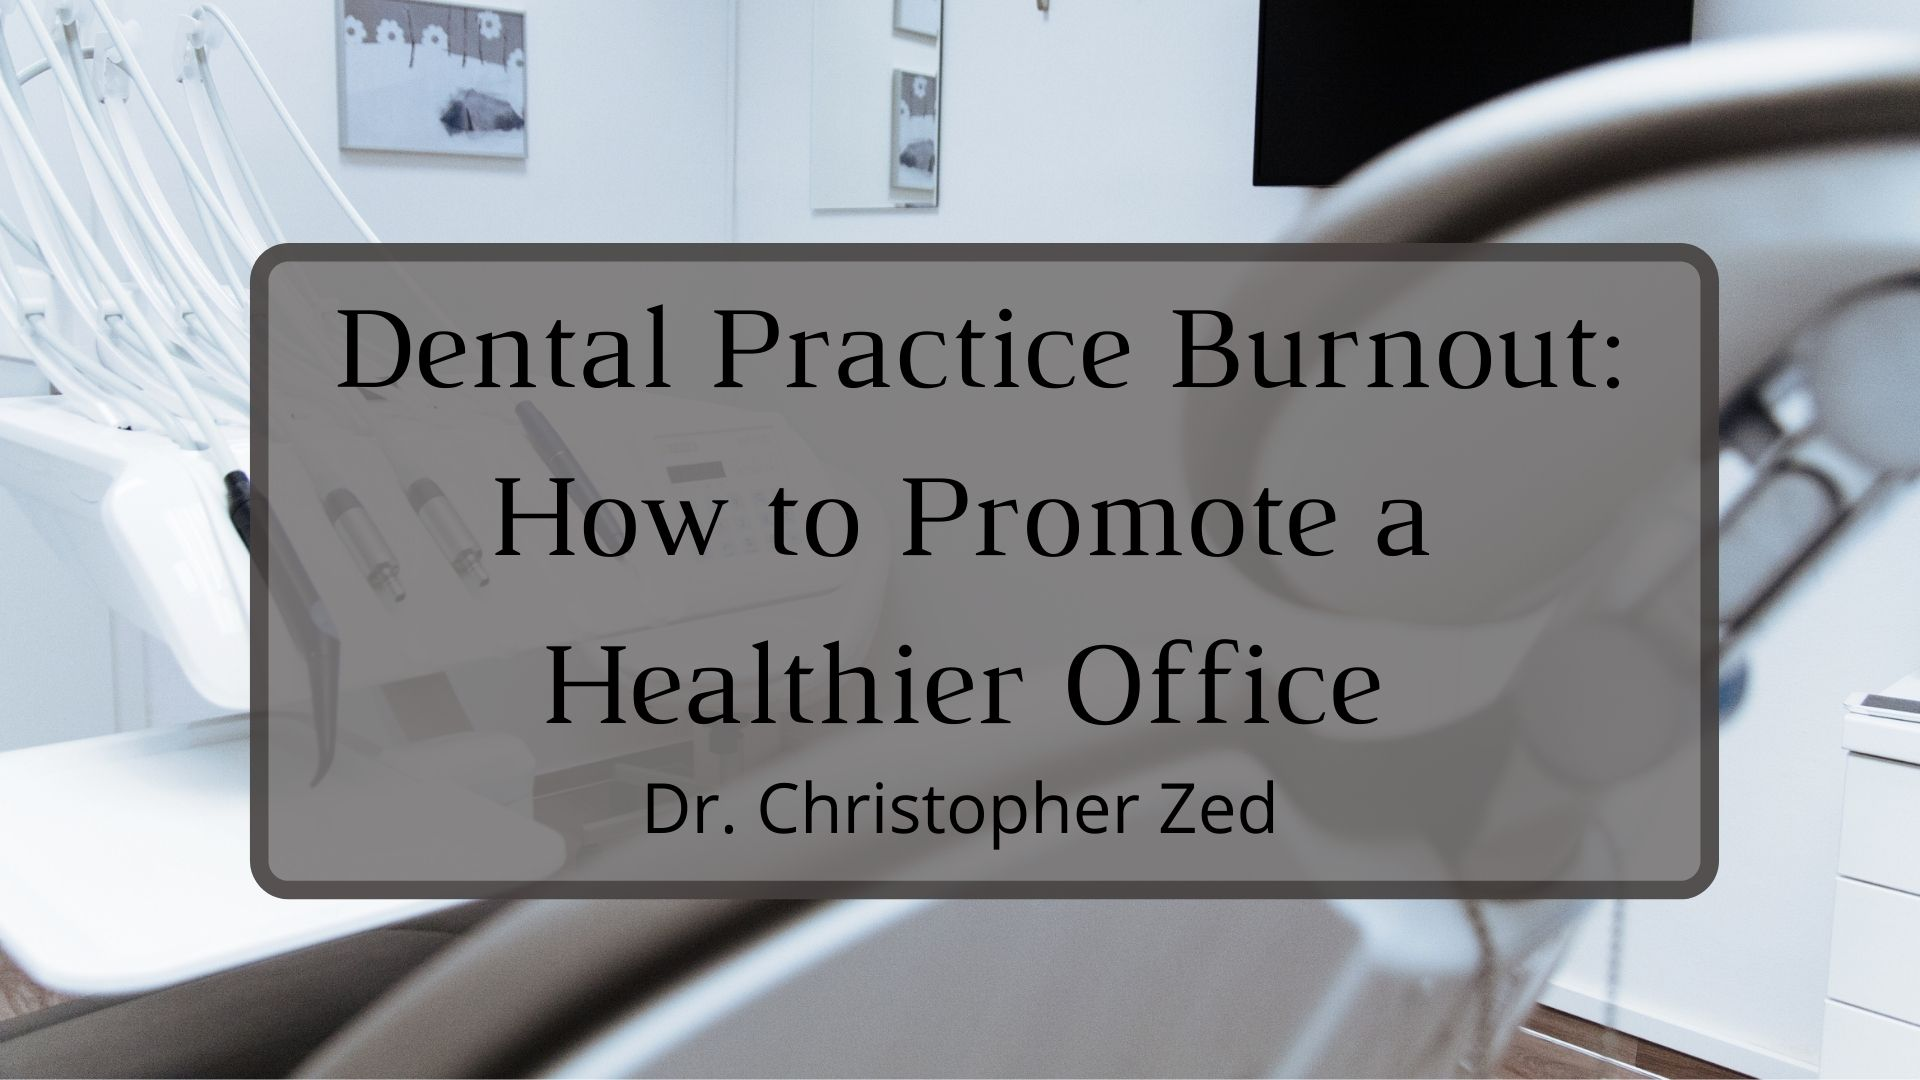 Dr. Christopher Zed Dental Practice Burnout_ How to Promote a Healthier Office